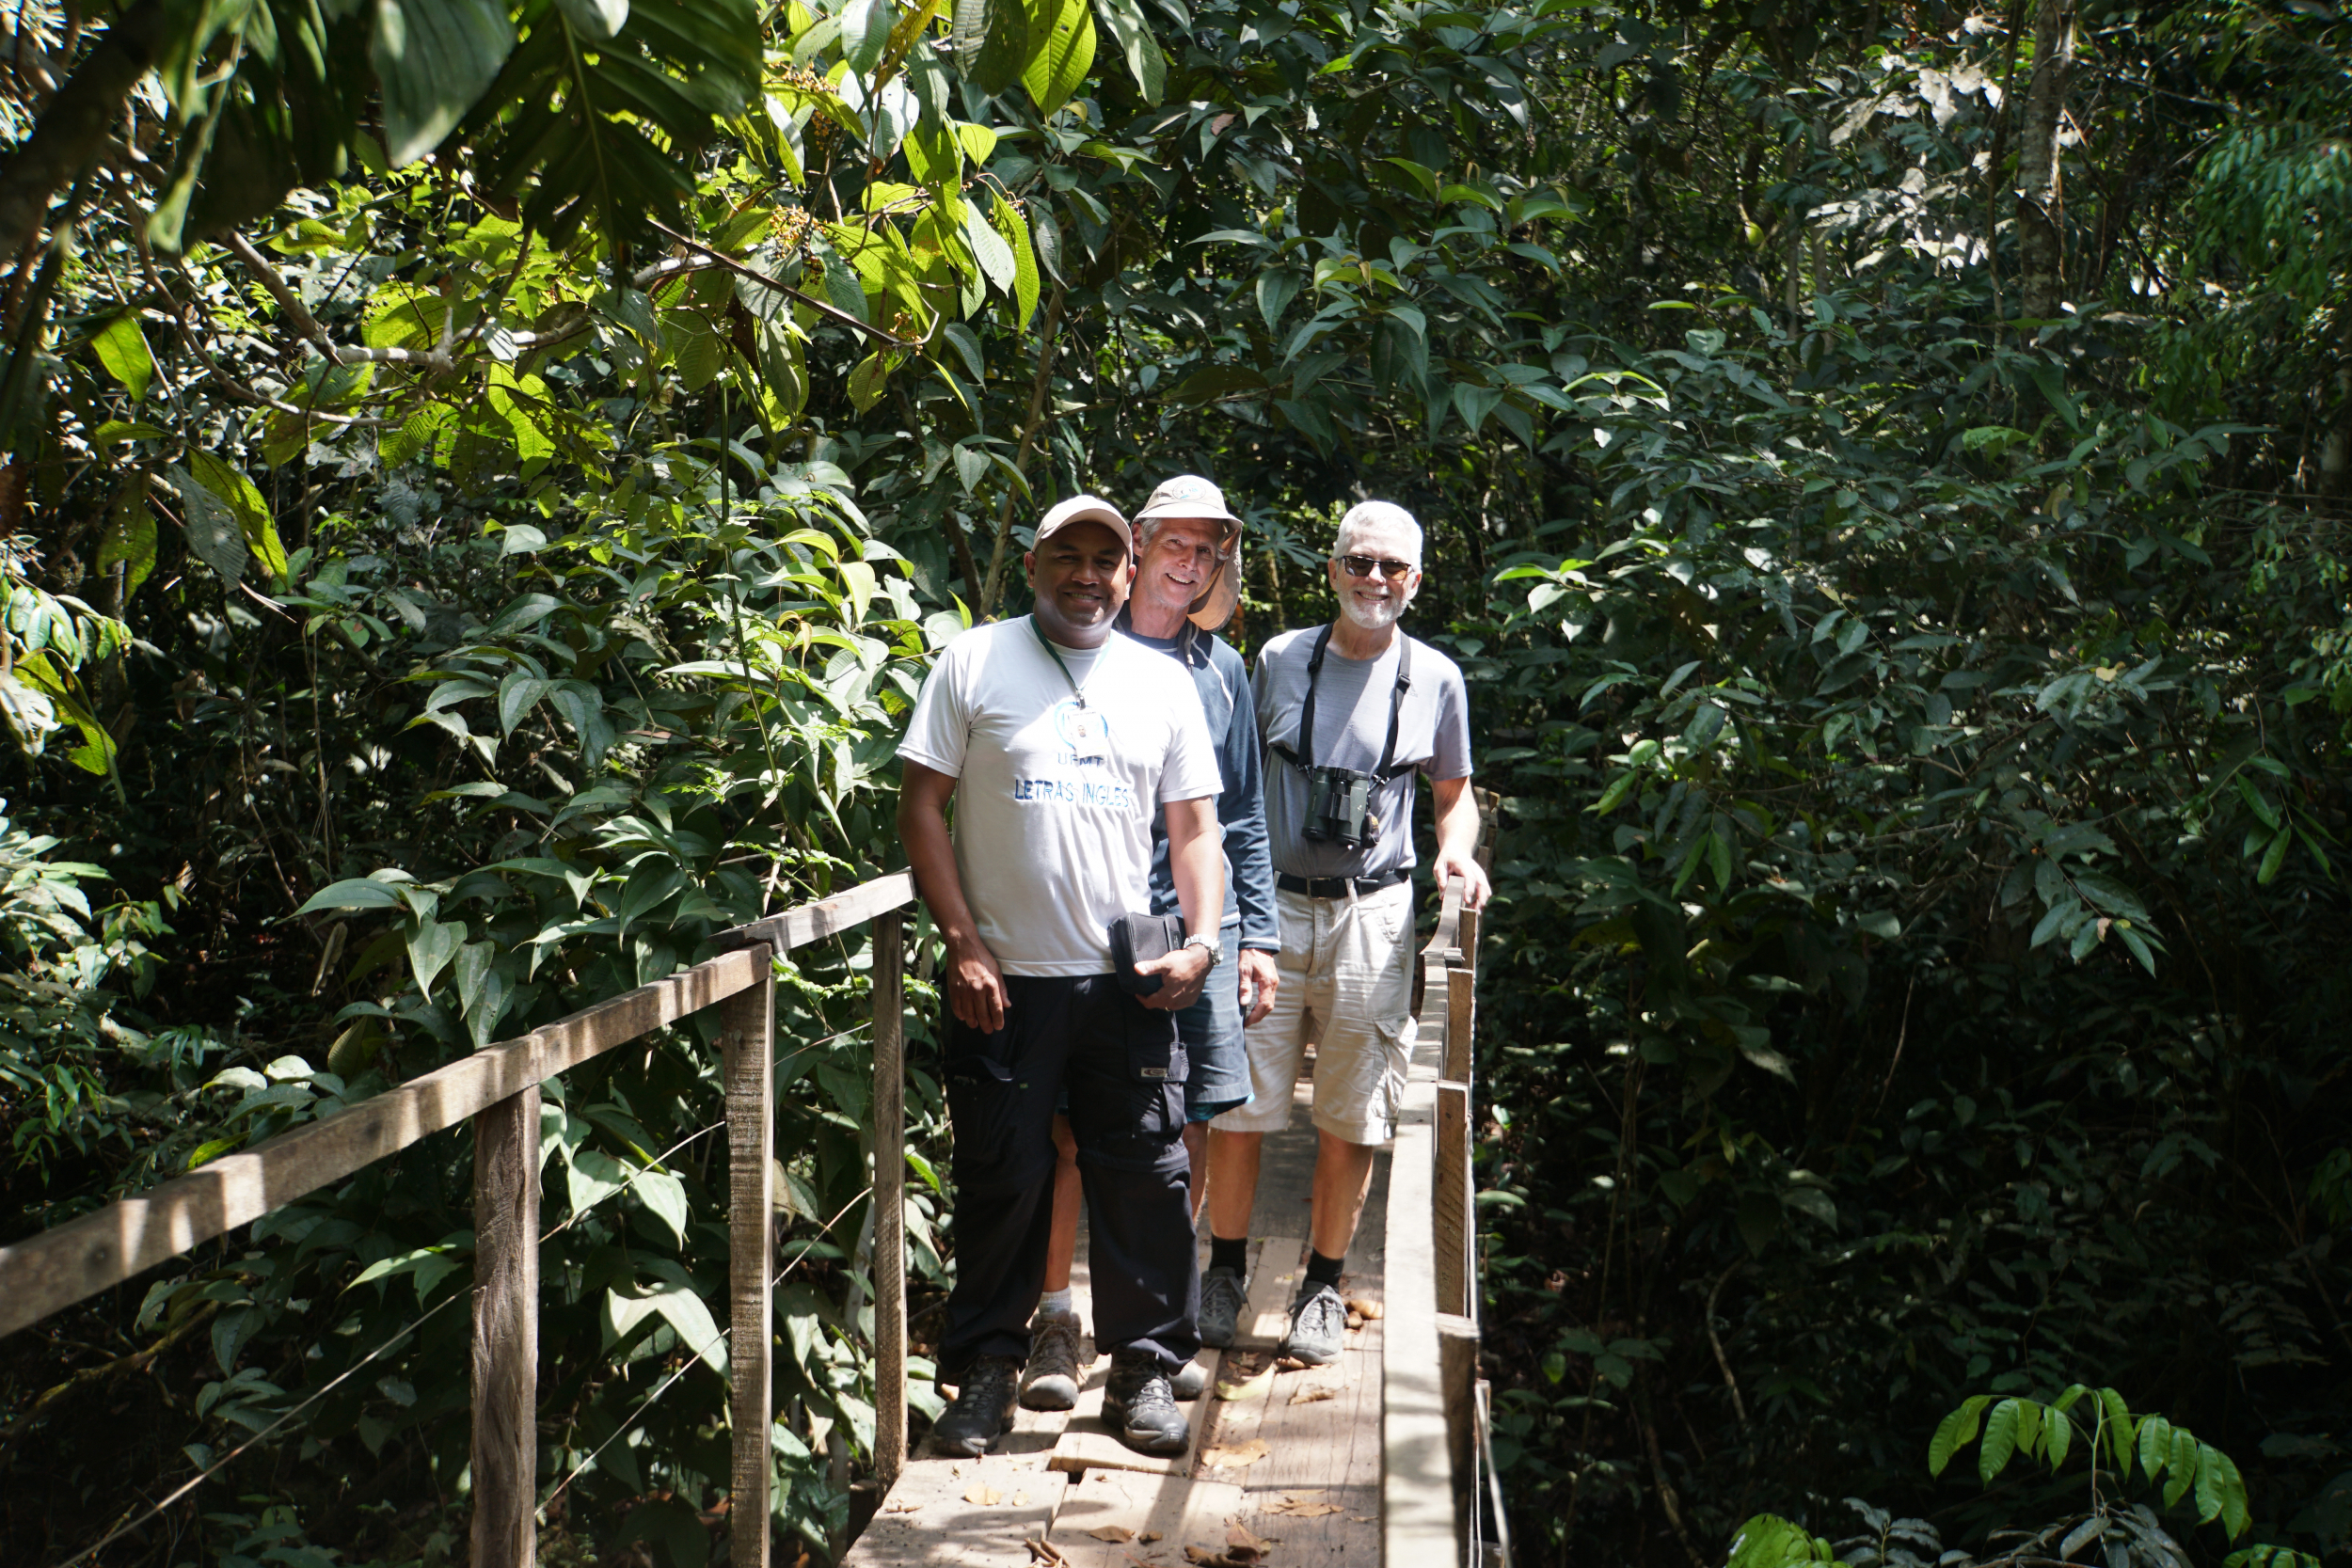 41. Hike to the waterfalls with guide